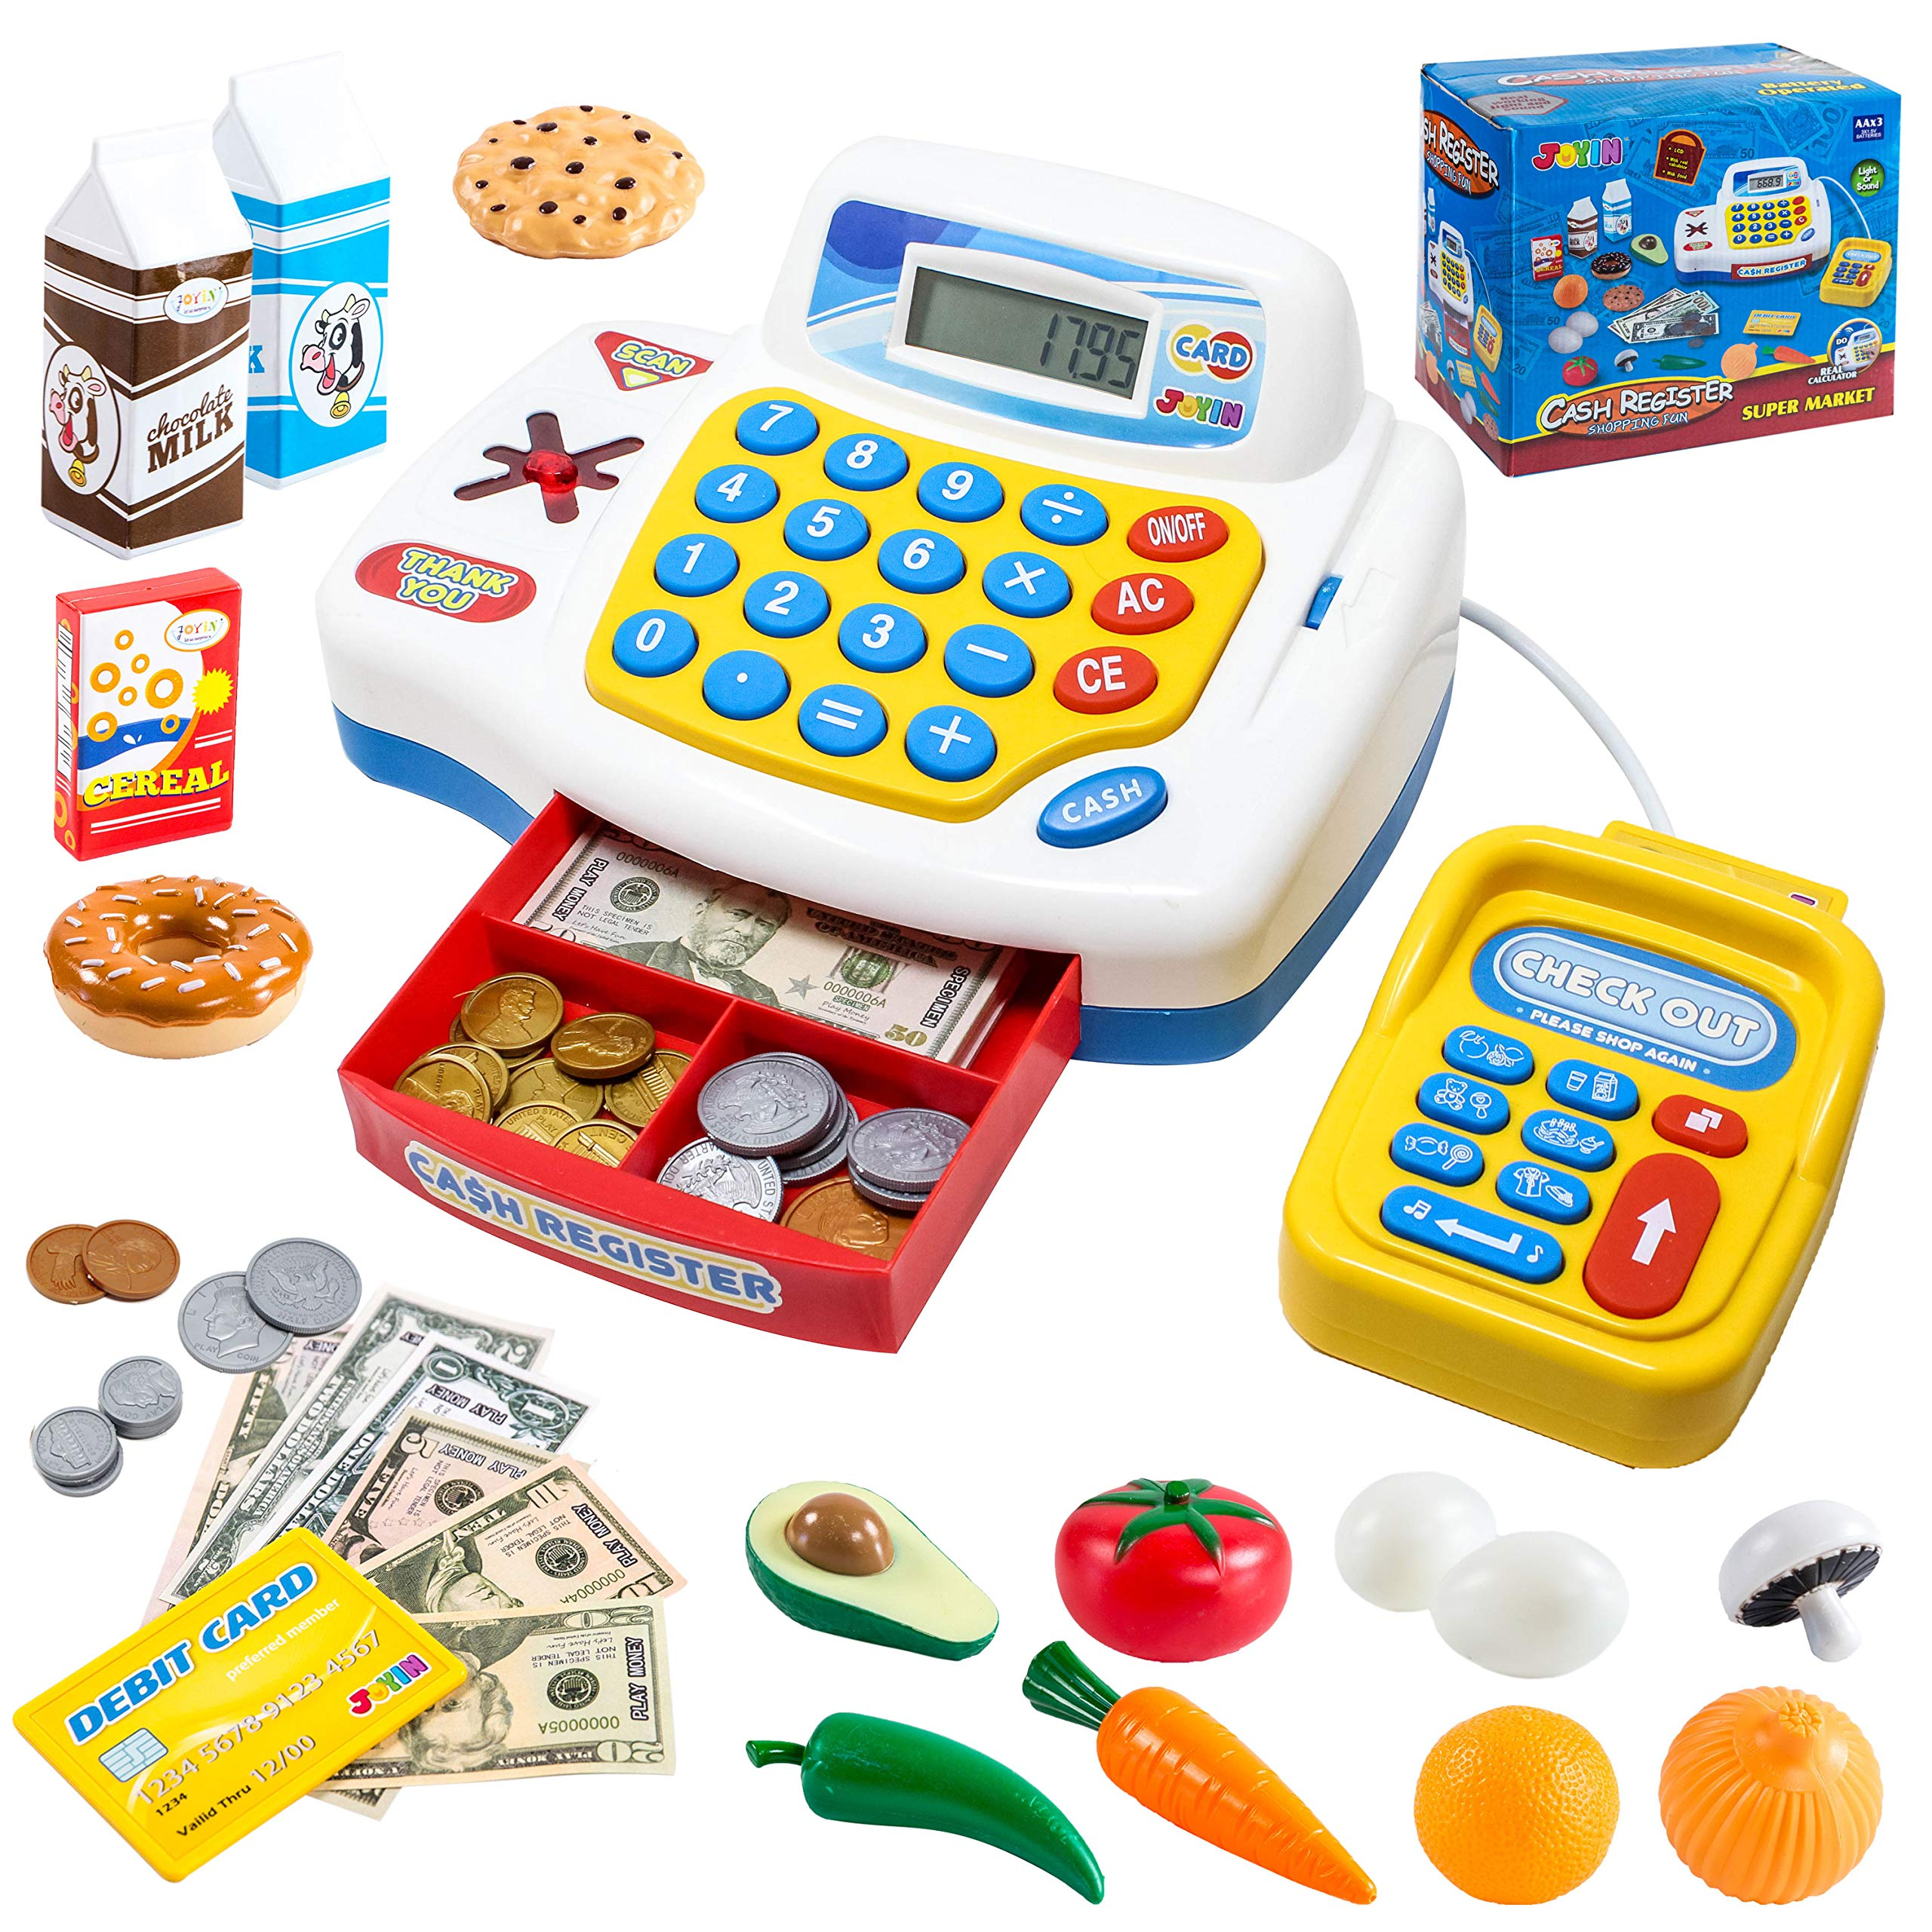 Toy Cash Register Shopping Pretend Play Money Machine with Dual Languages, Scanner, Card Reader and Grocery Play Food Set for Kids Boys and Girls Gifts, Toddler Interactive Learning, Teaching Tools. by JOYIN (Image #1)